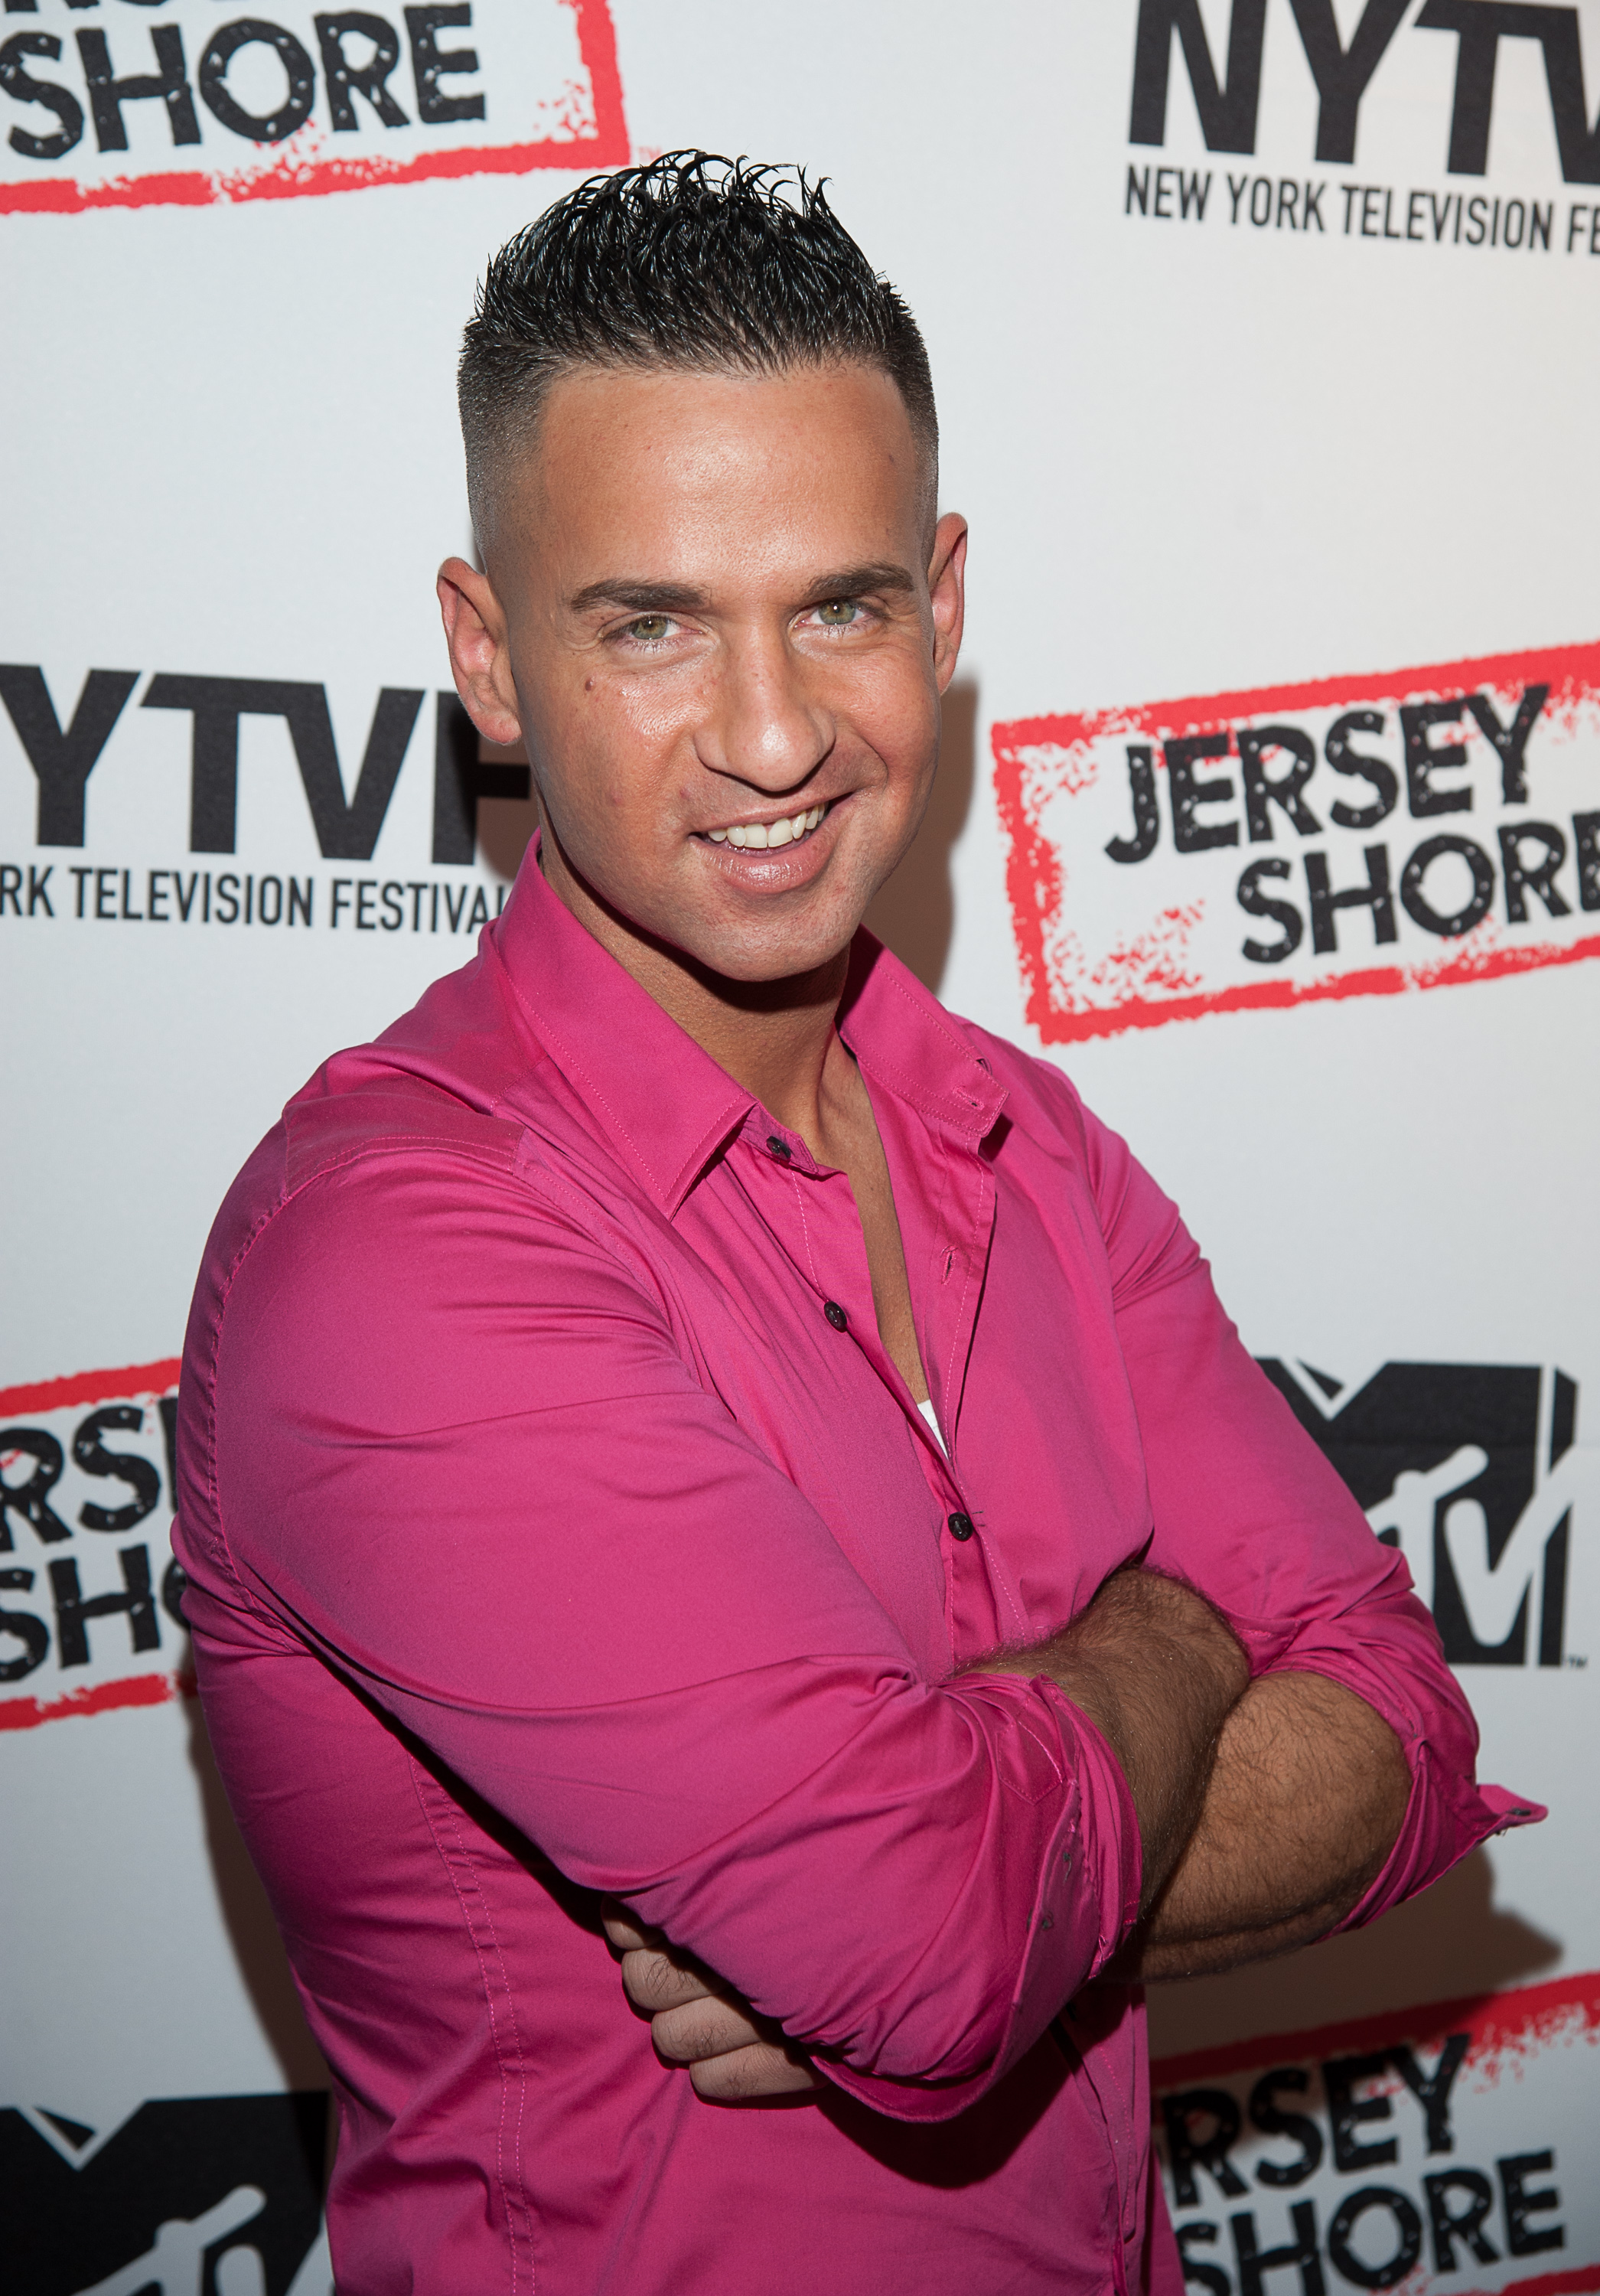 Mike  The Situation  Sorrentino attends  Love, Loss, (Gym, Tan) and Laundry: A Farewell To The Jersey Shore  during the 2012 New York Television Festival at 92Y Tribeca in New York City on October 24, 2012.